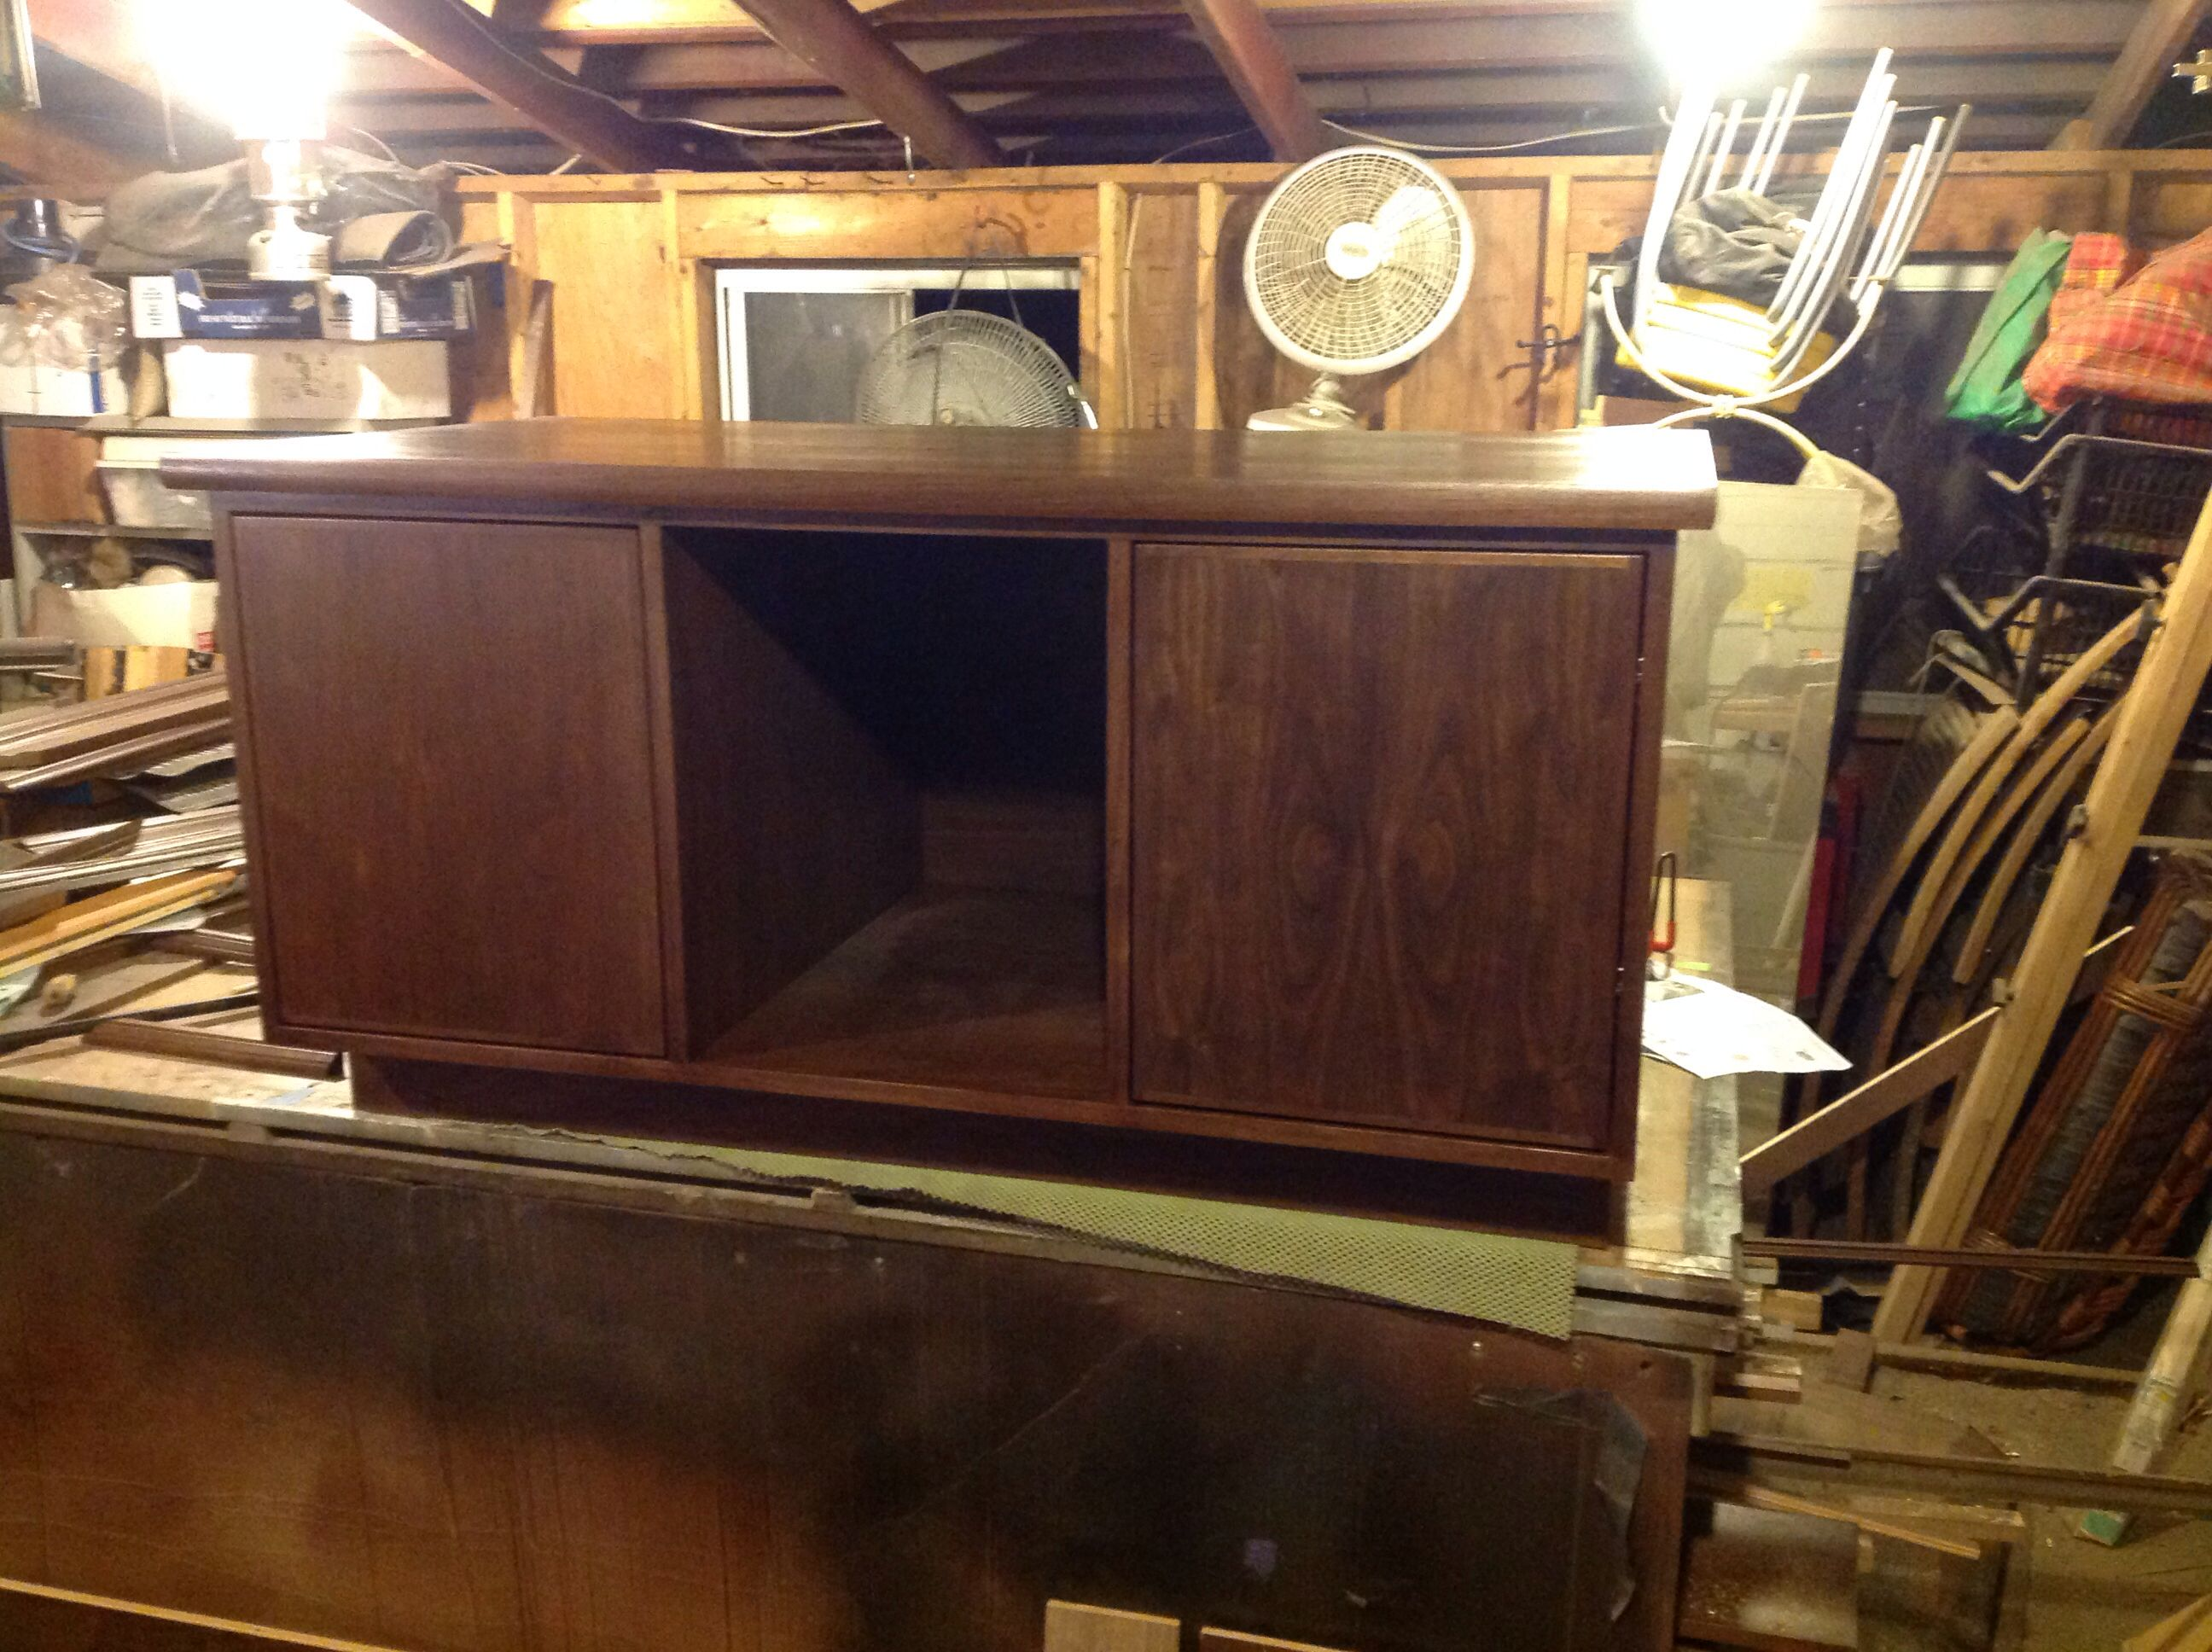 Walnut fish tank stand designed to hold 100 gallon tank